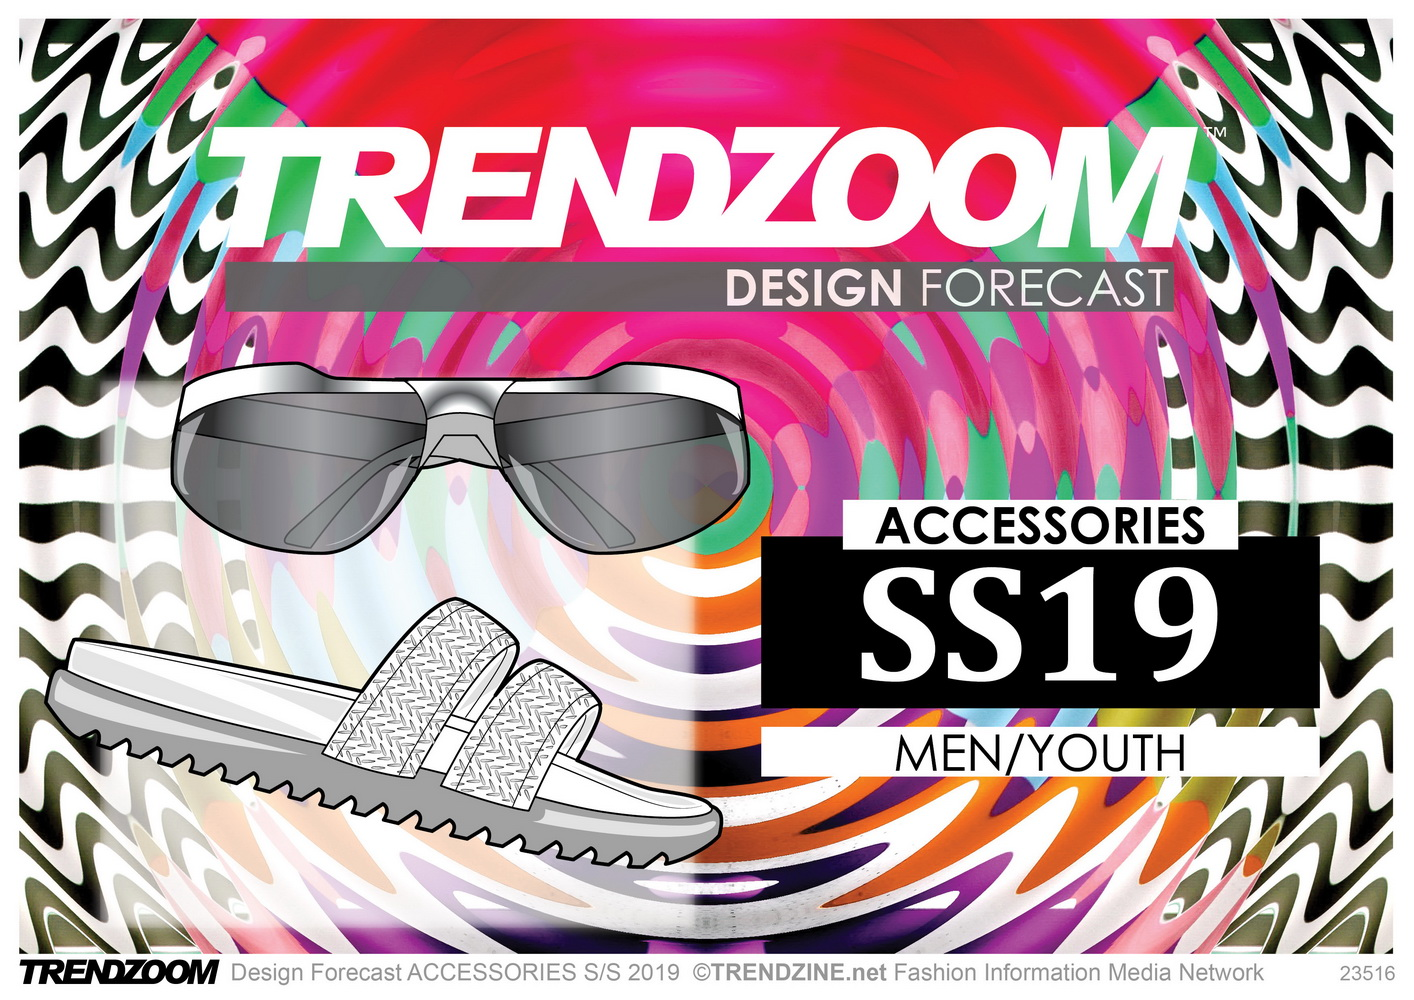 Trendzoom Design Forecast S S 2019 Men Youth Accessories Trendzoom